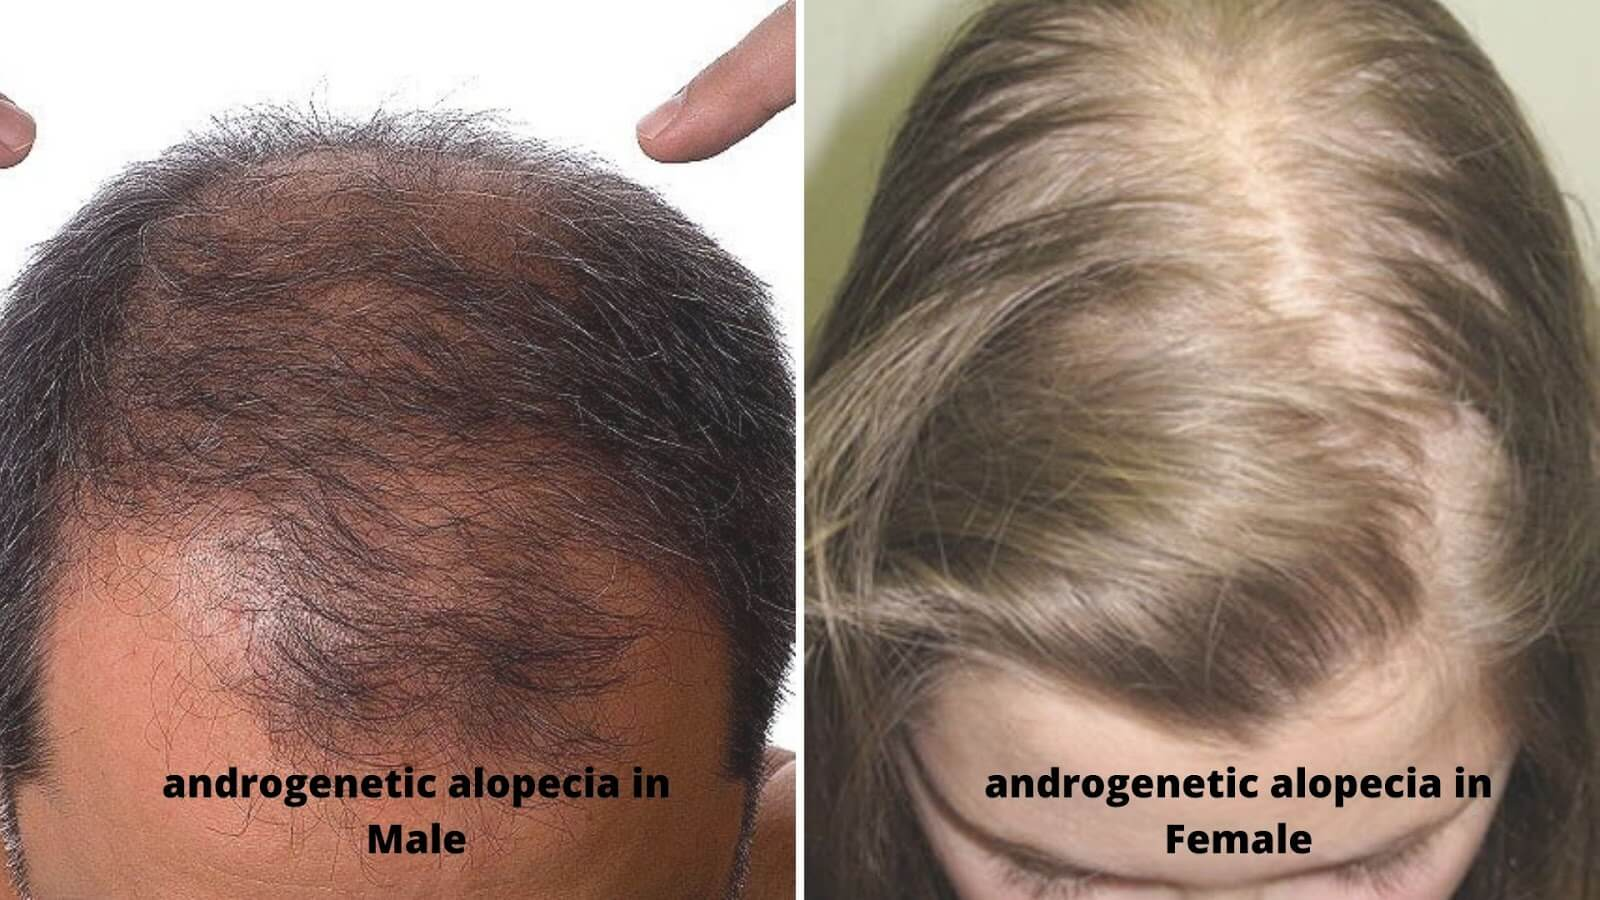 What is androgenetic alopecia?